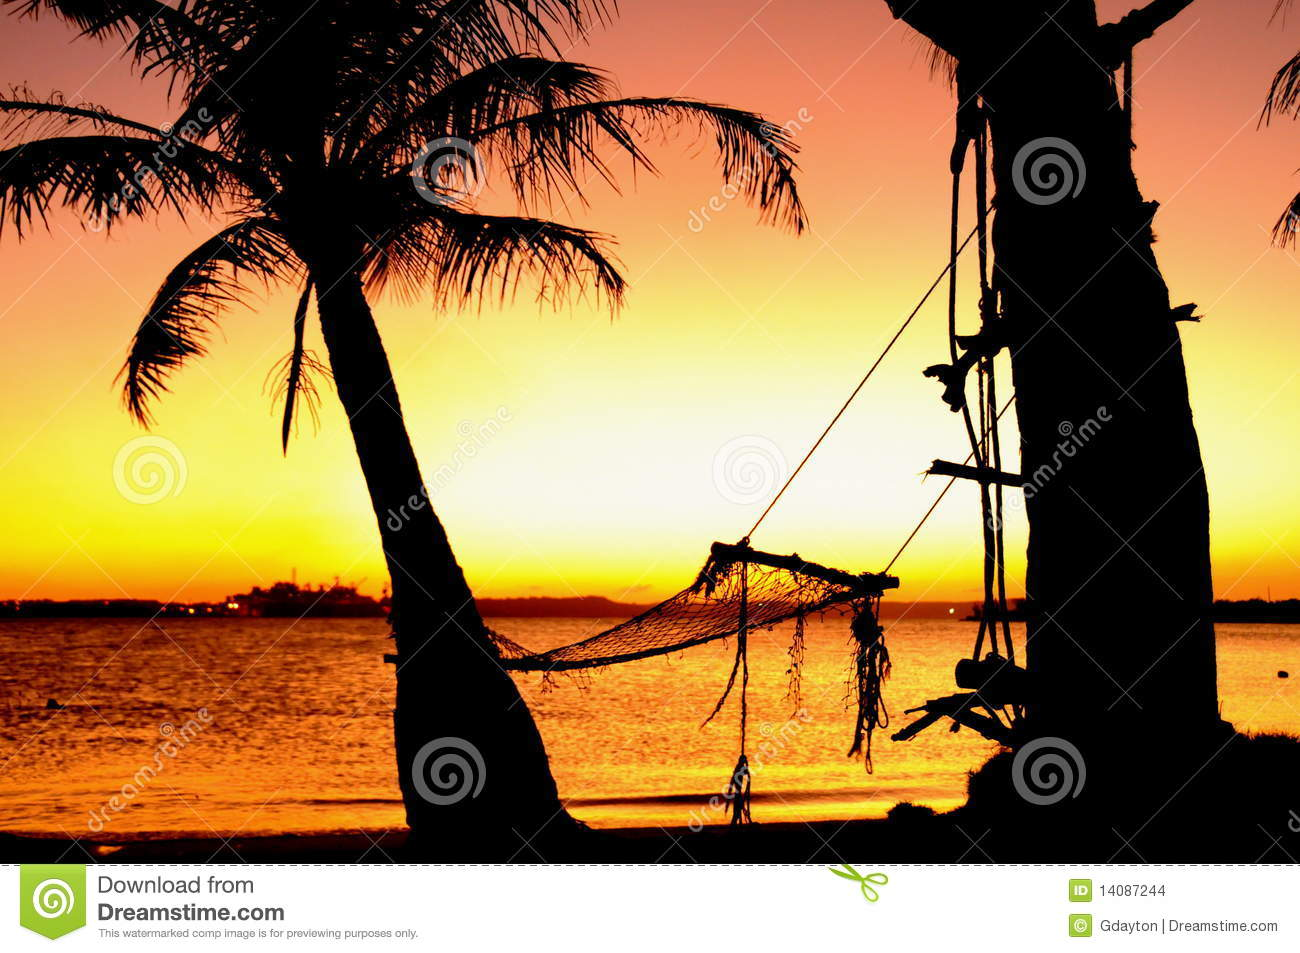 beach hammock sunset beach hammock beach sunset tropical beaches 1300x953